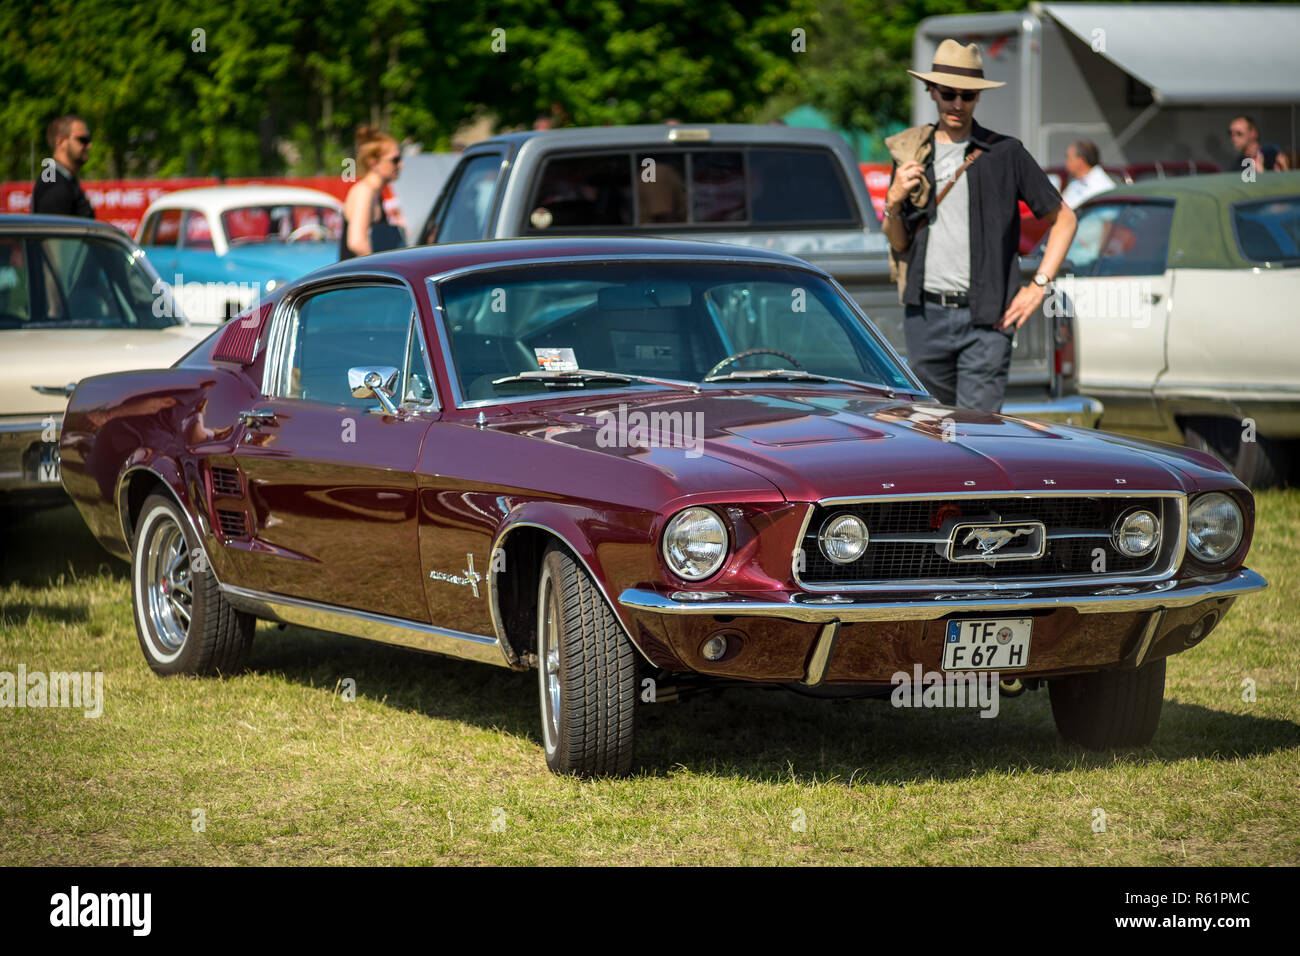 Paaren im glien germany may 19 2018 pony car ford mustang